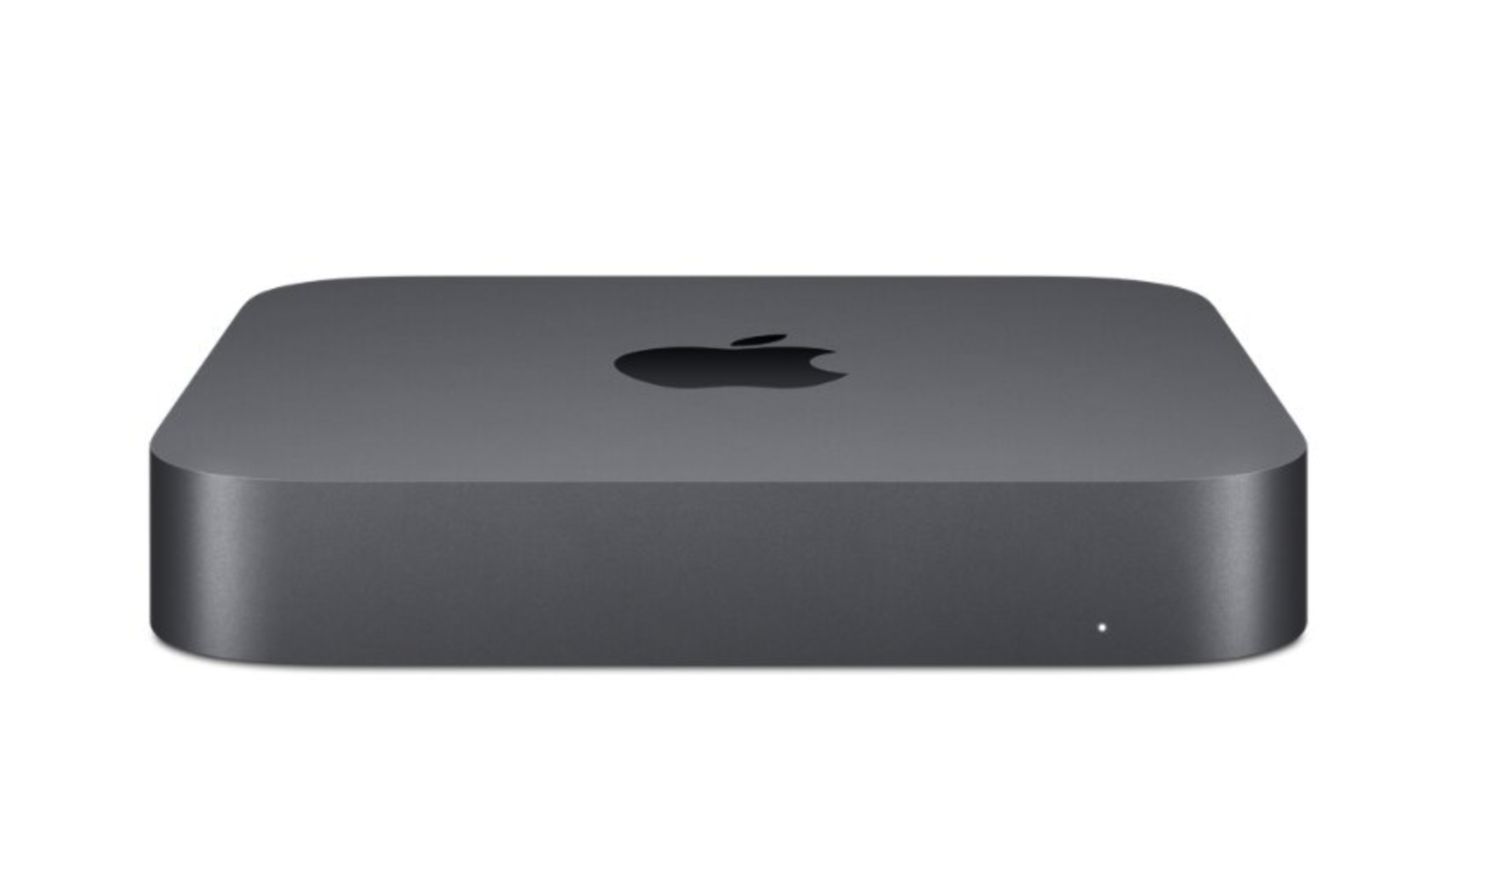 Настольный компьютер Apple Mac Mini MXNF2RU/A (Intel Core i3-8100/8/256/Intel UHD Graphics 630/OS X)